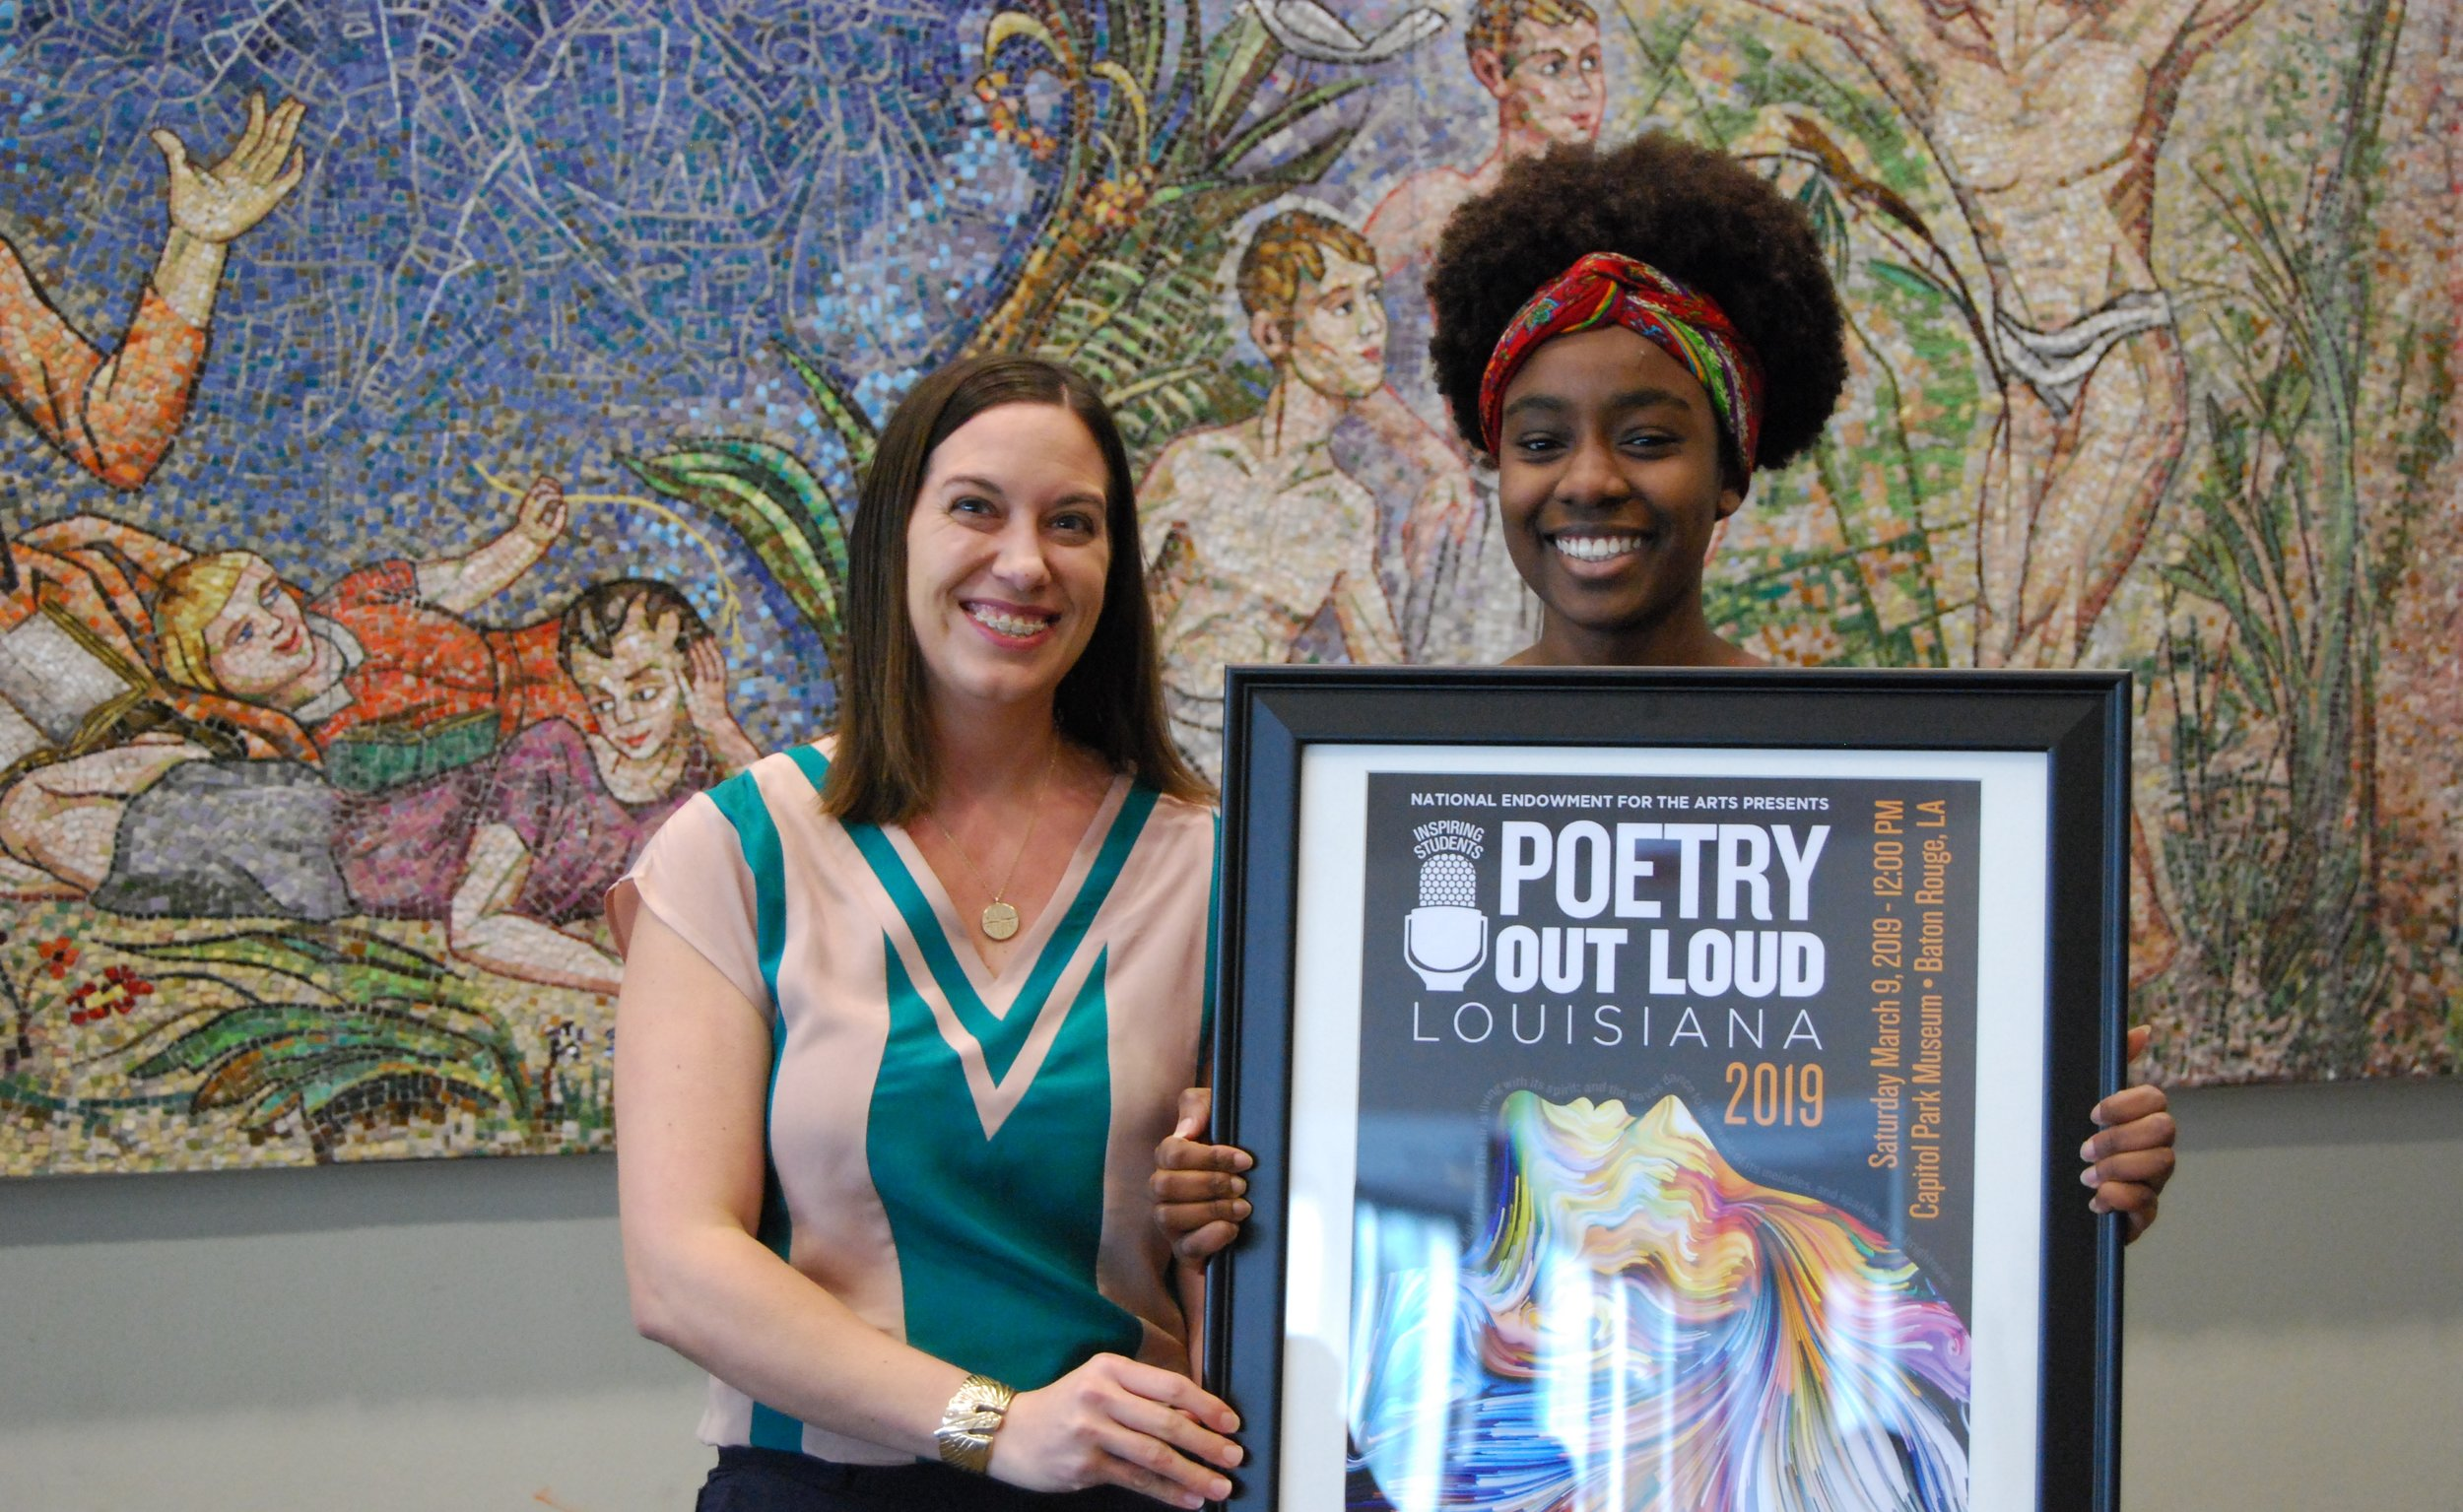 National Competitions — Arts Council of Greater Baton Rouge